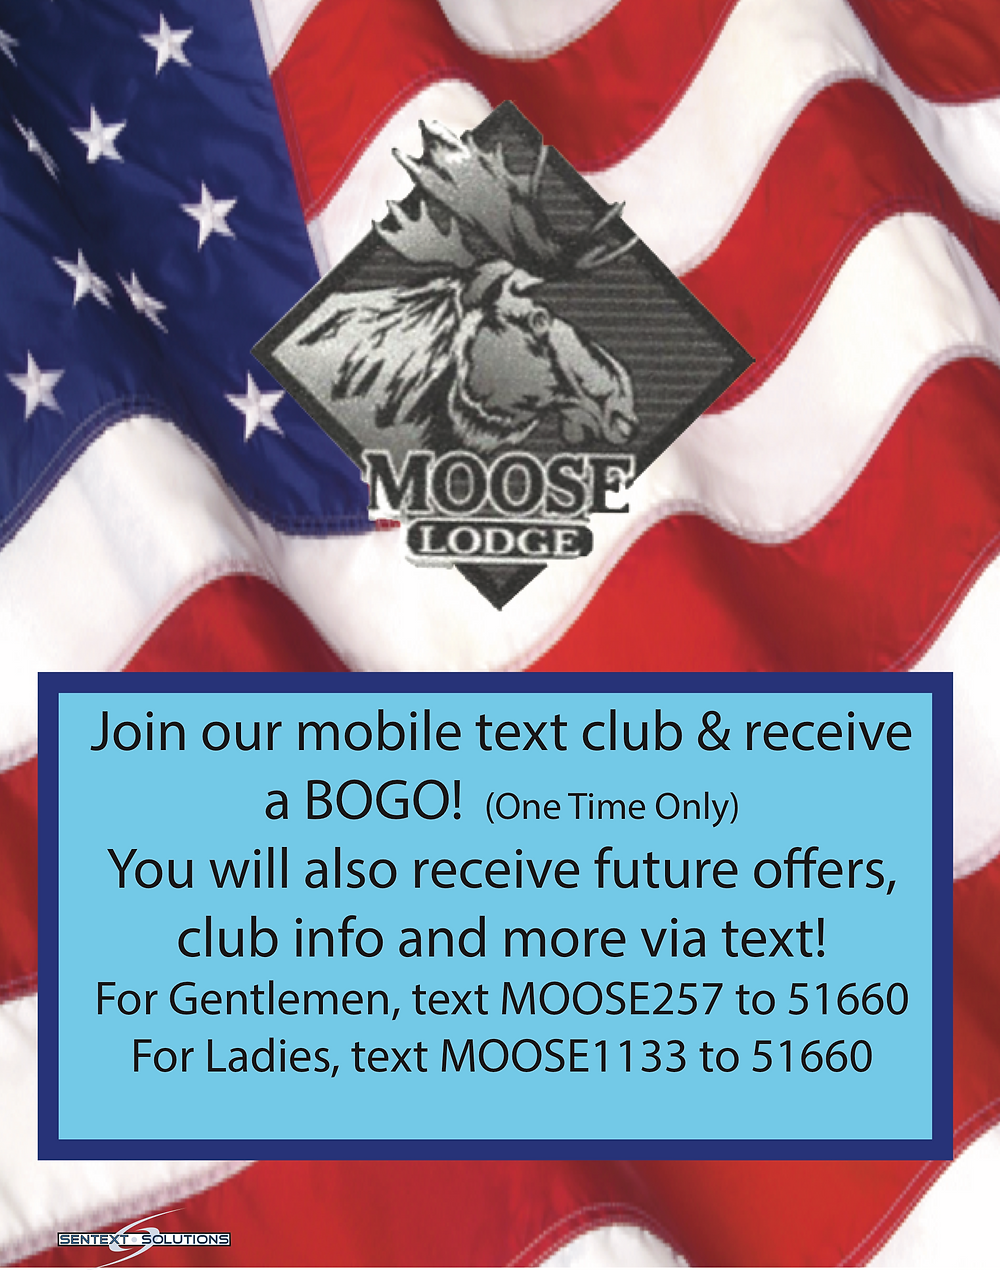 Cheyenne Moose Lodge